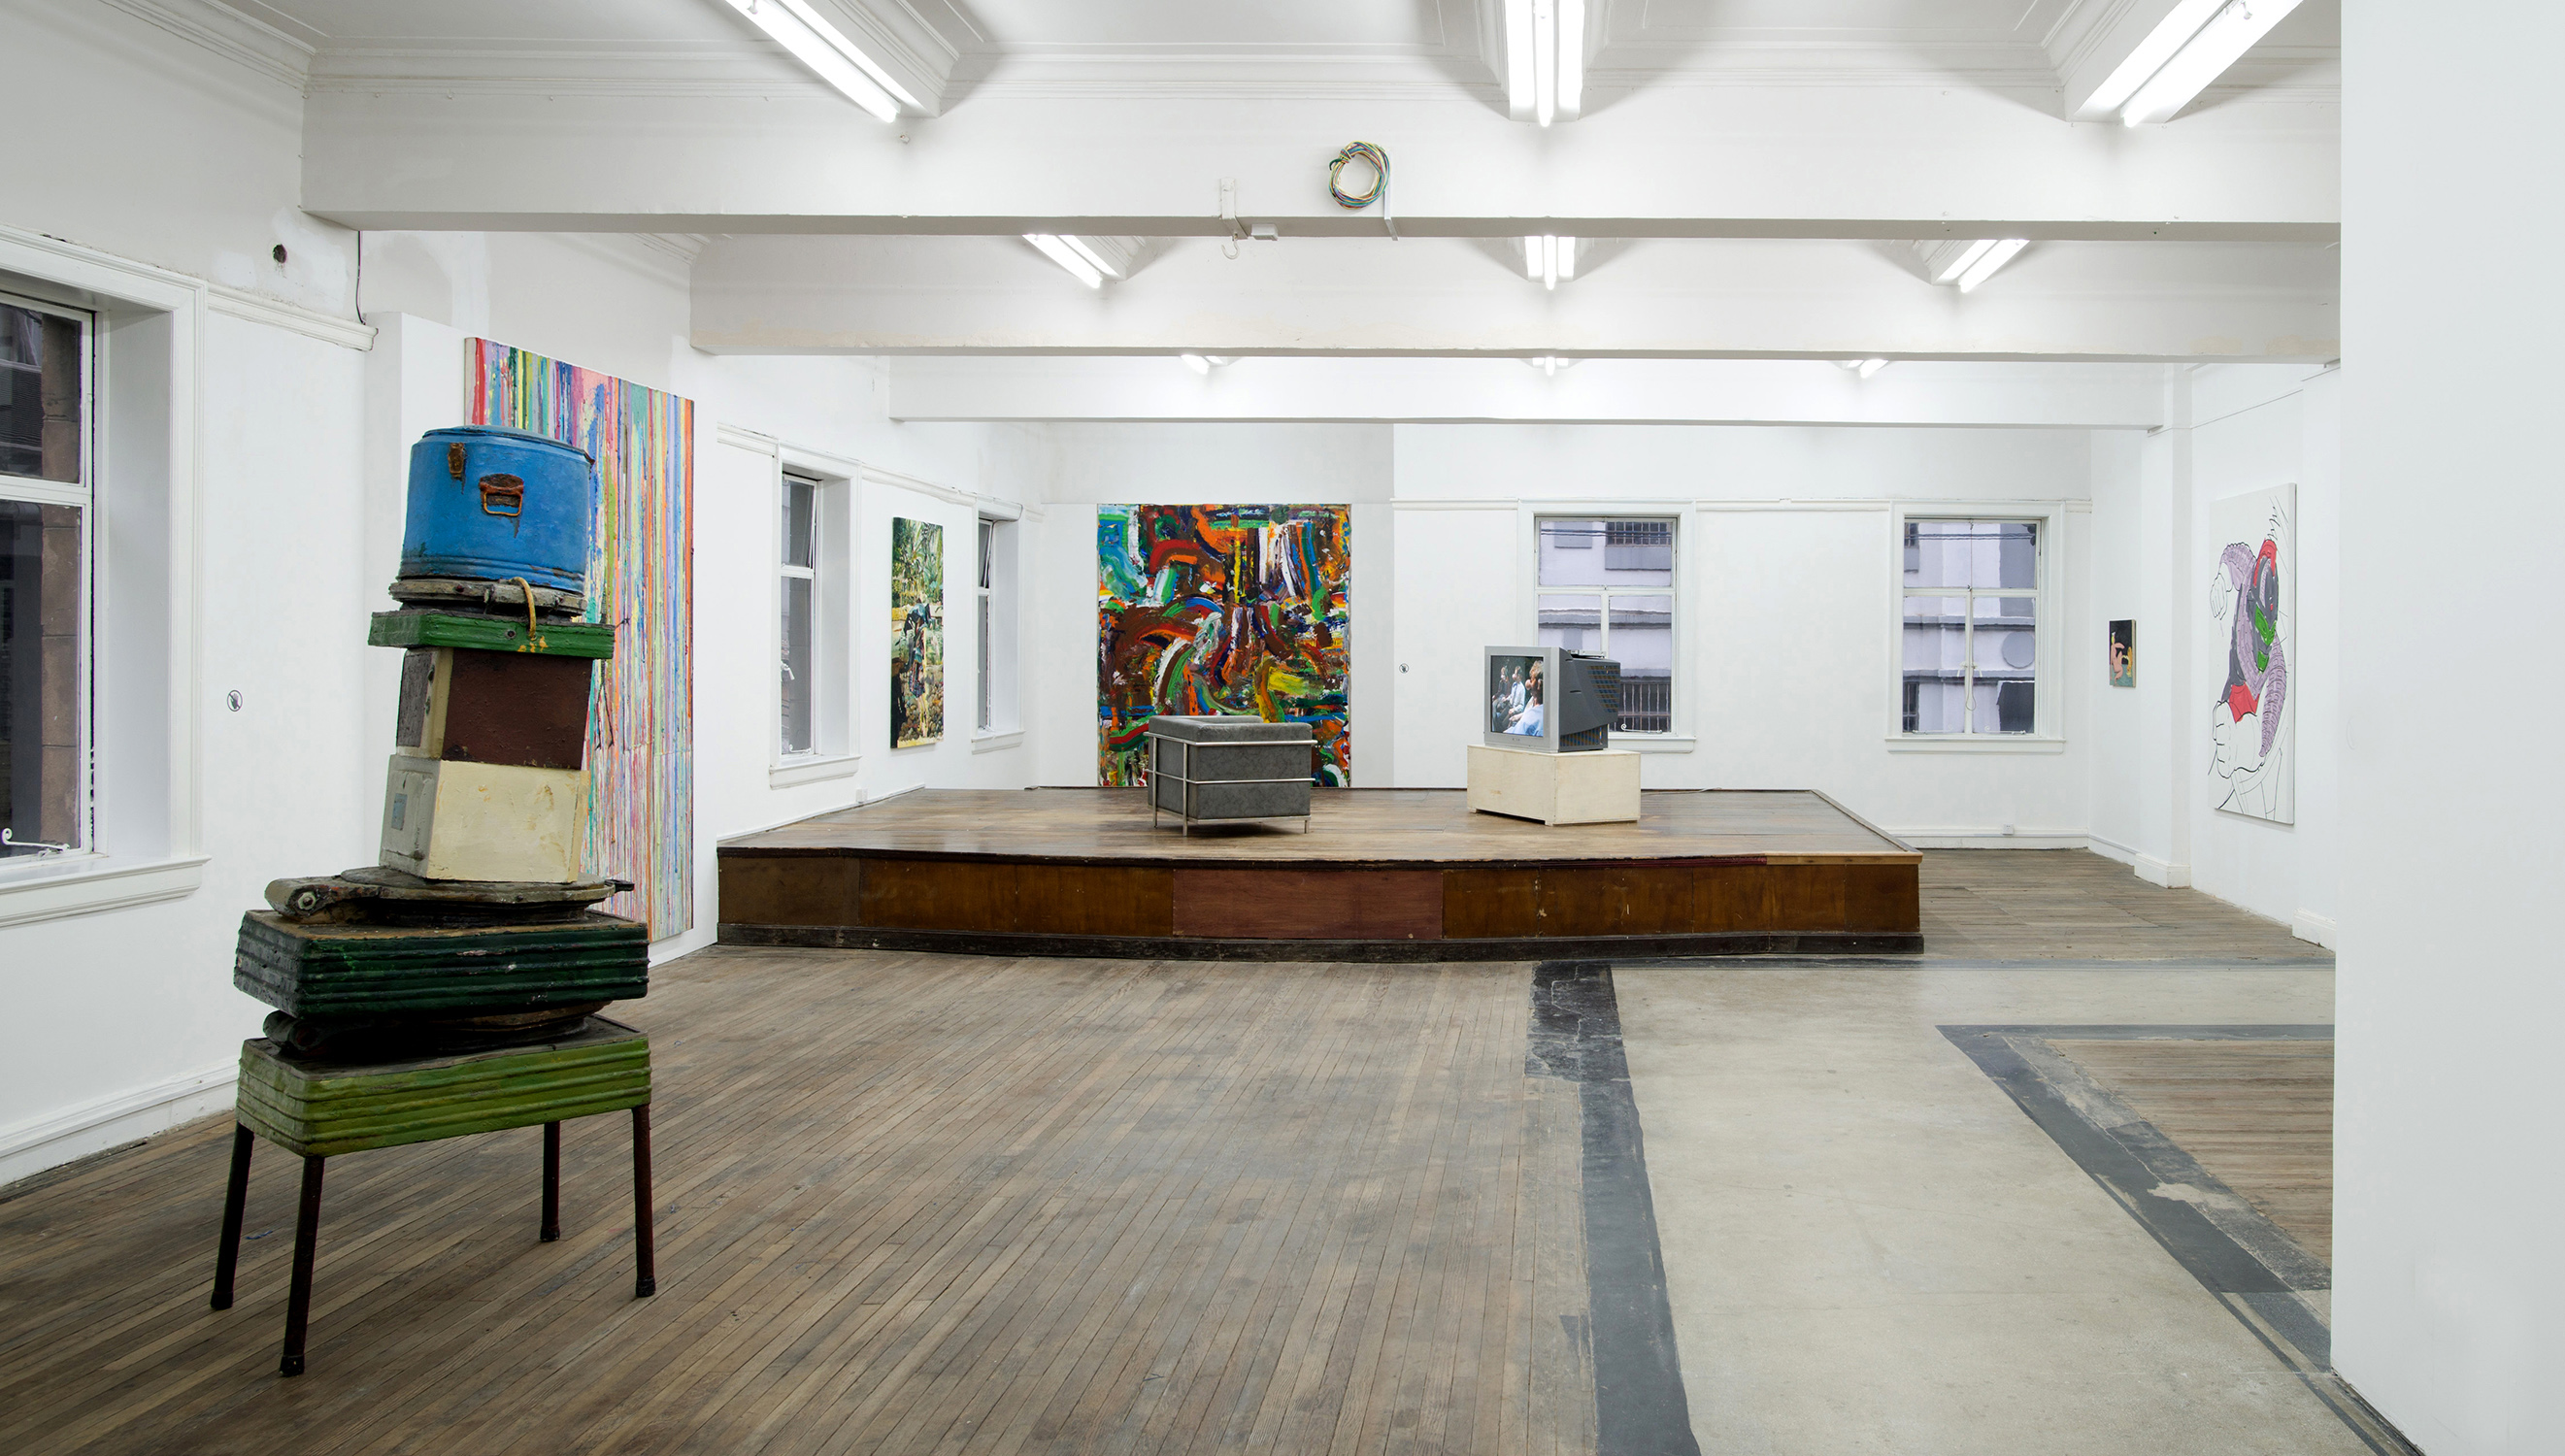 Exhibition view, PAINT(erly) (2013), at BANK, Shanghai. Image courtesy the gallery.